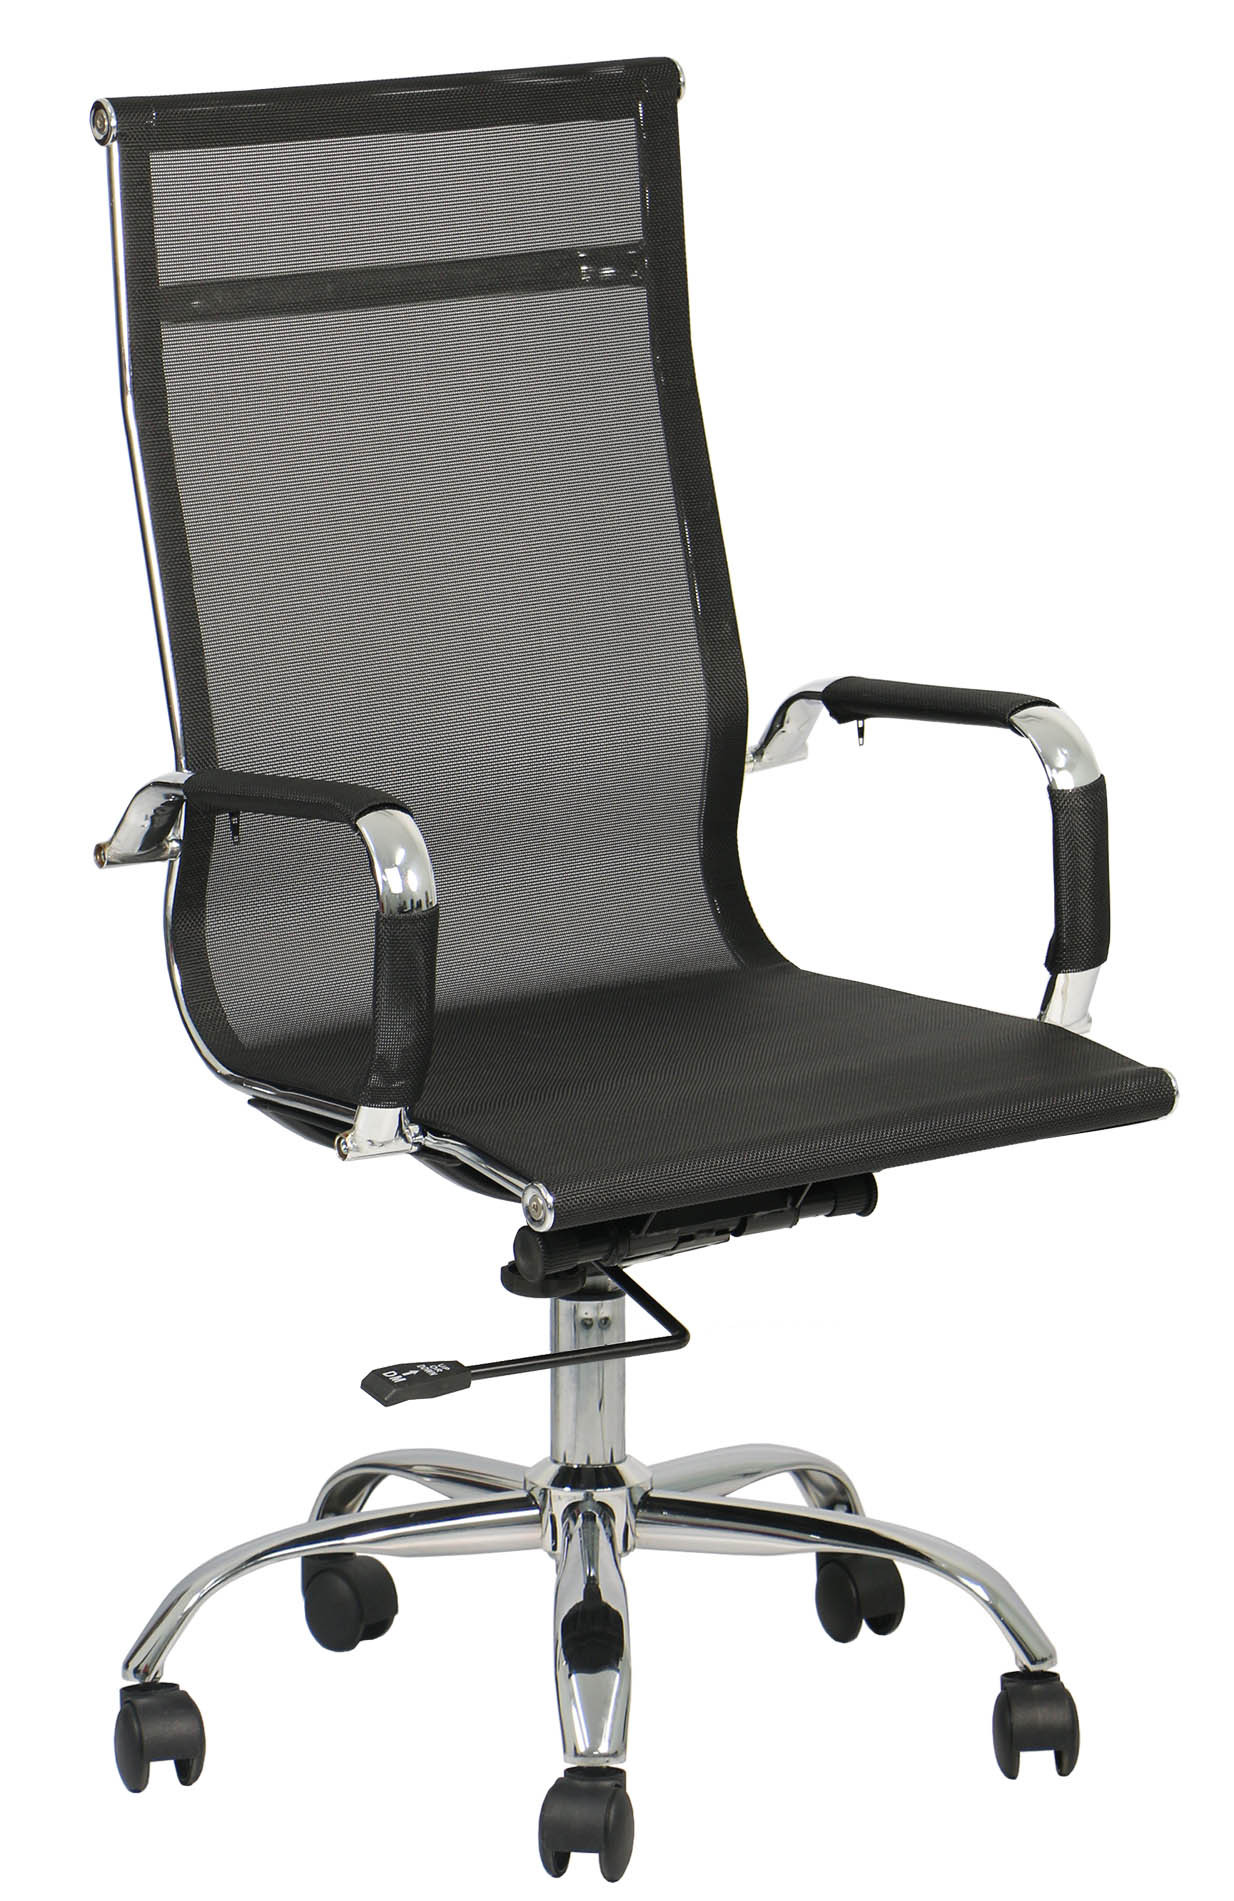 eames office chair mesh highback replica furniture home d cor fortytwo. Black Bedroom Furniture Sets. Home Design Ideas